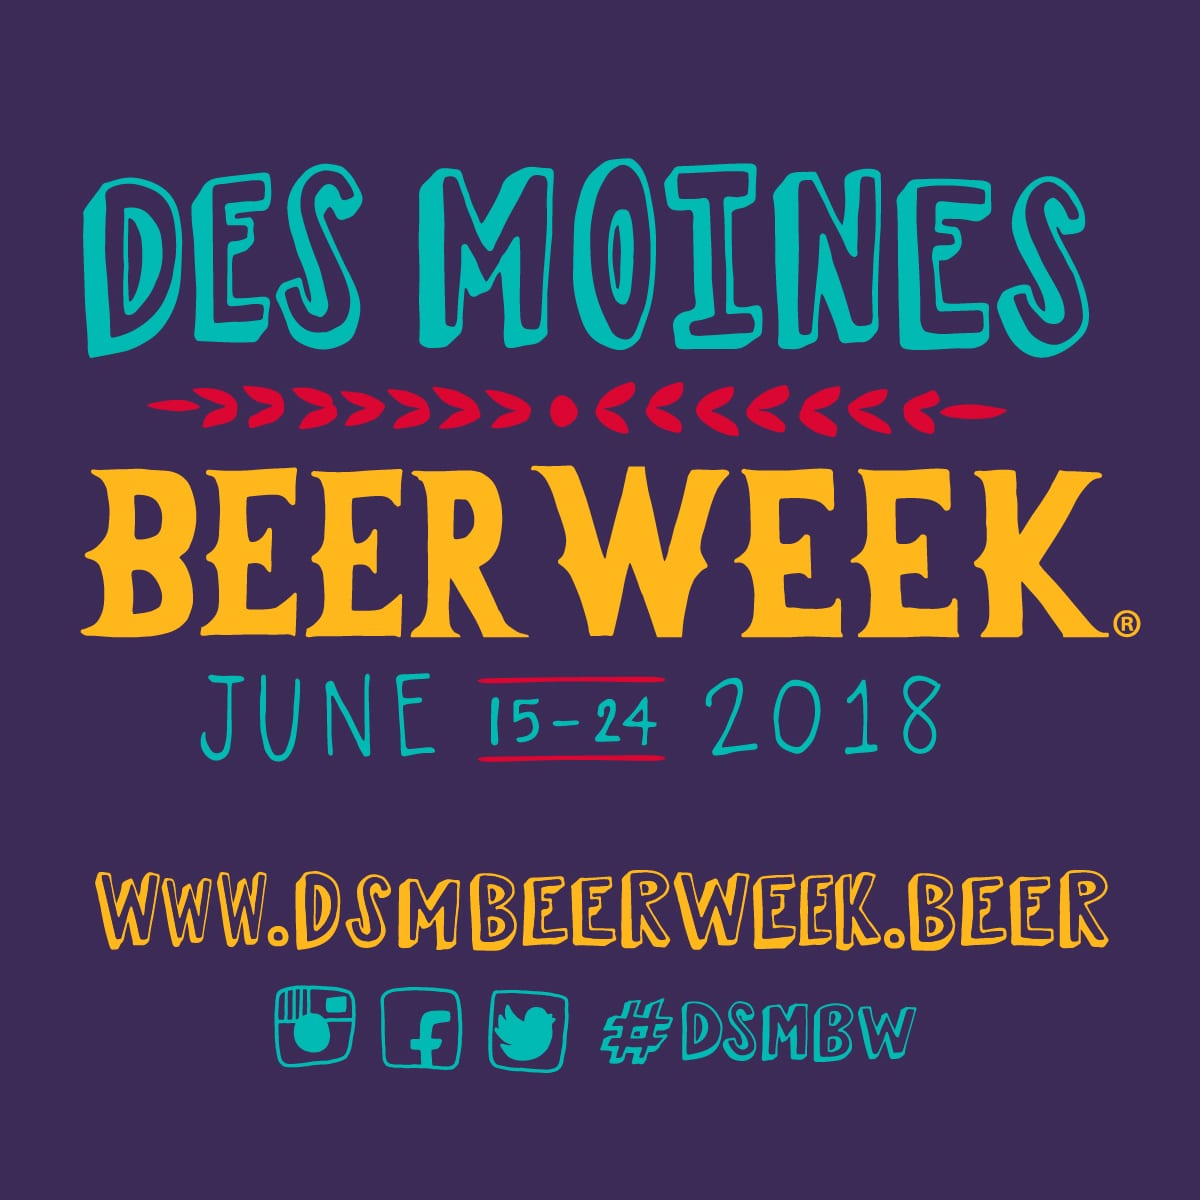 2018 Des Moines Beer Week – June 15-24